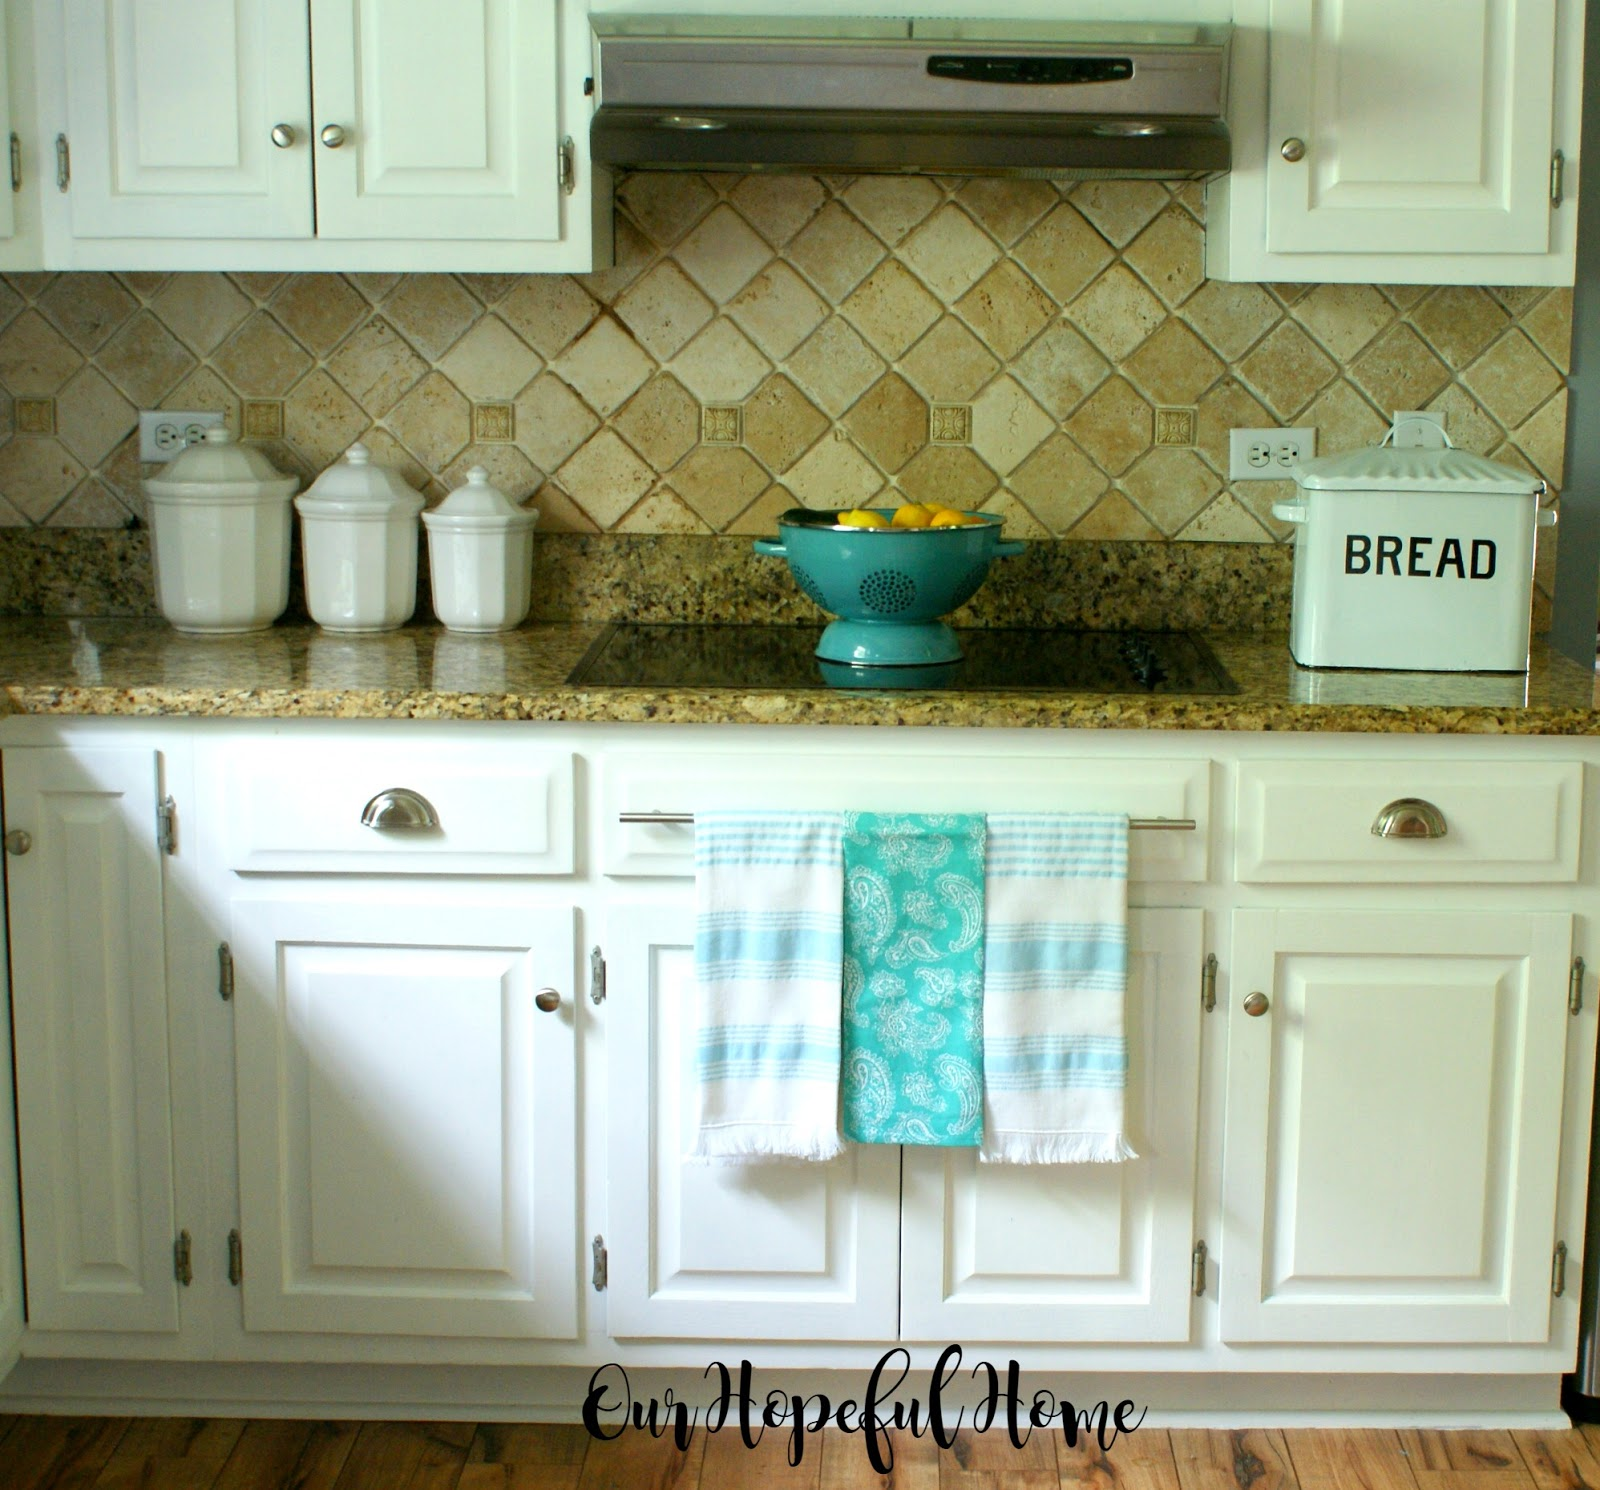 our hopeful home: how to install farmhouse kitchen towel bars